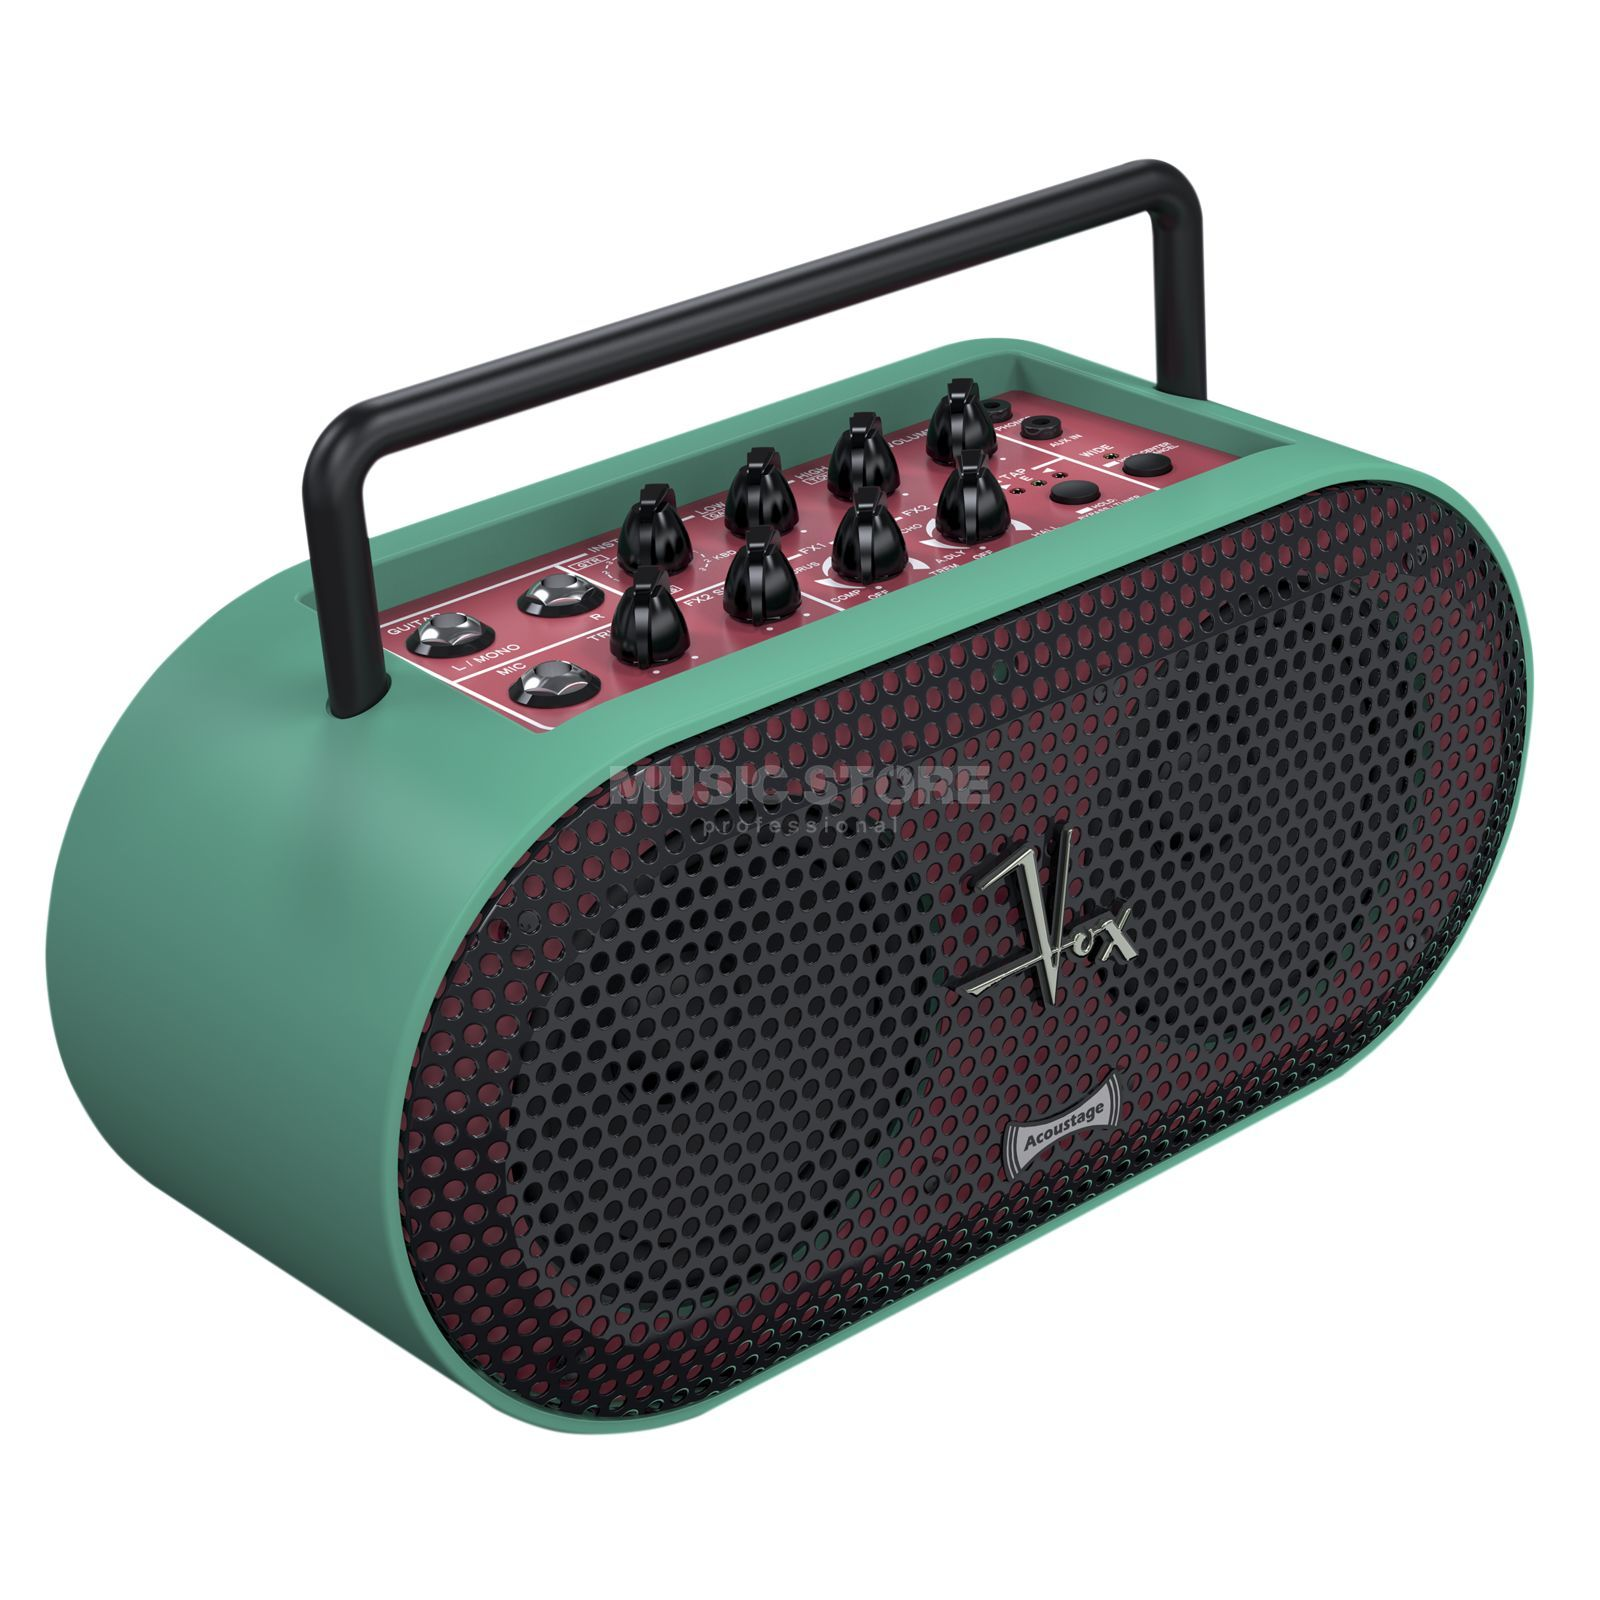 VOX Soundbox Mini GR Green Produktbild